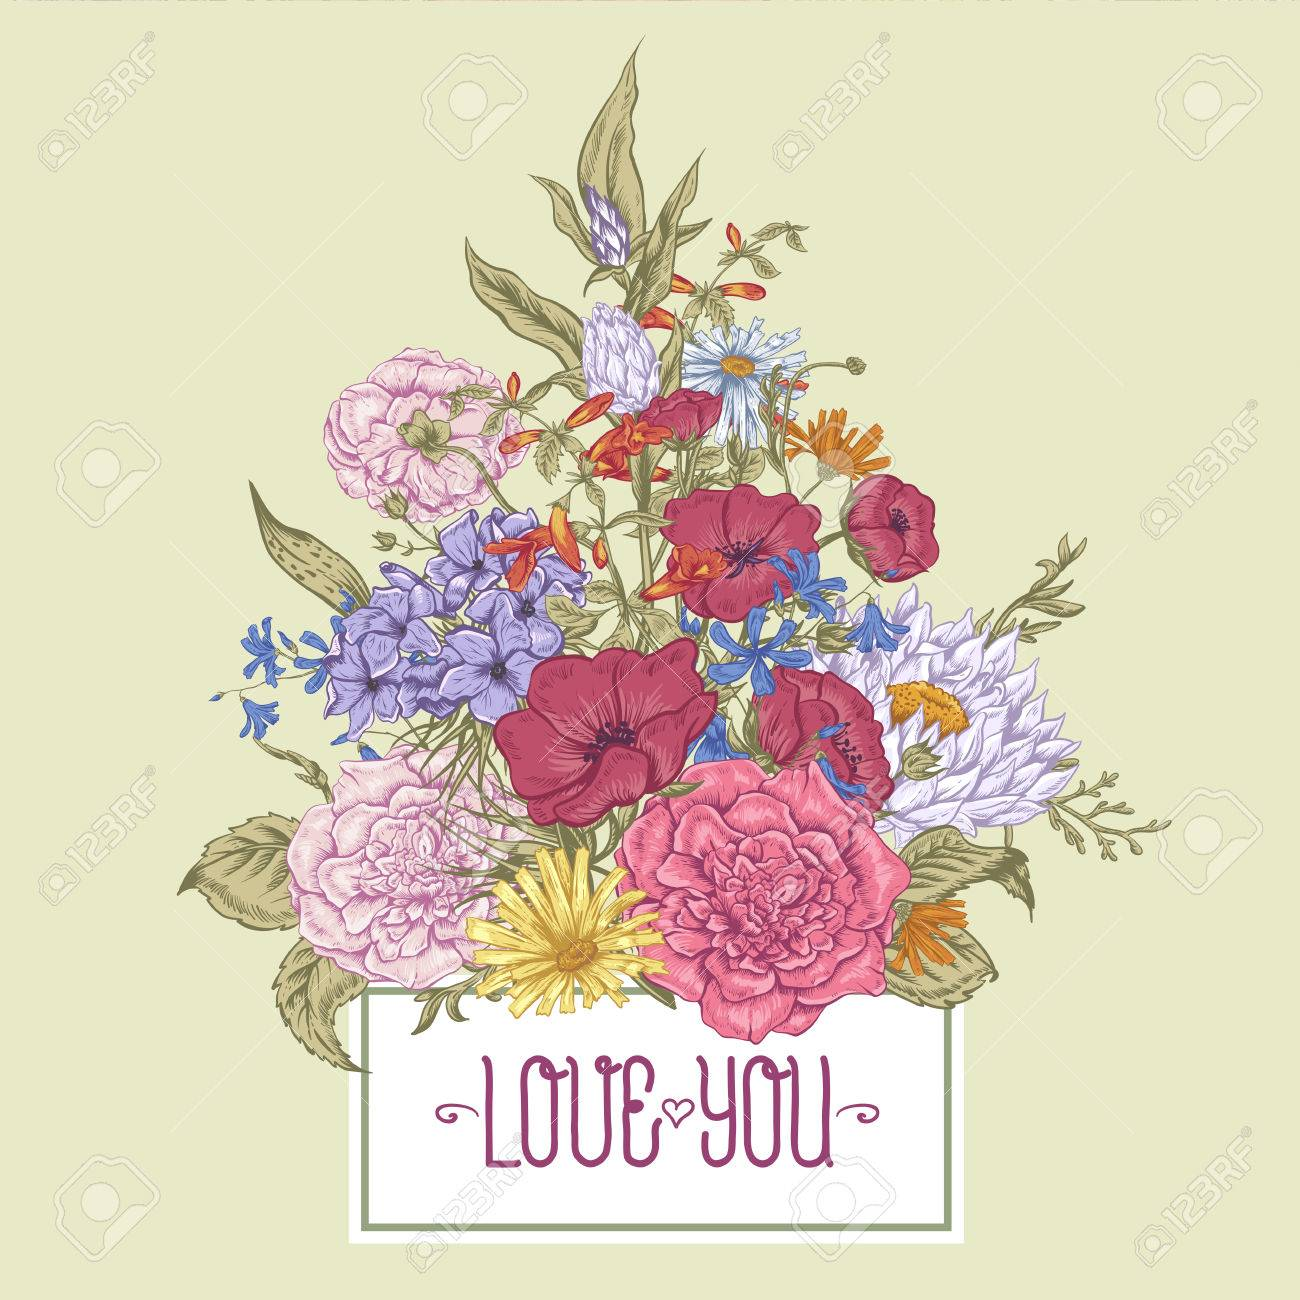 Gentle Retro Summer Floral Greeting Card Vintage Bouquet Vector